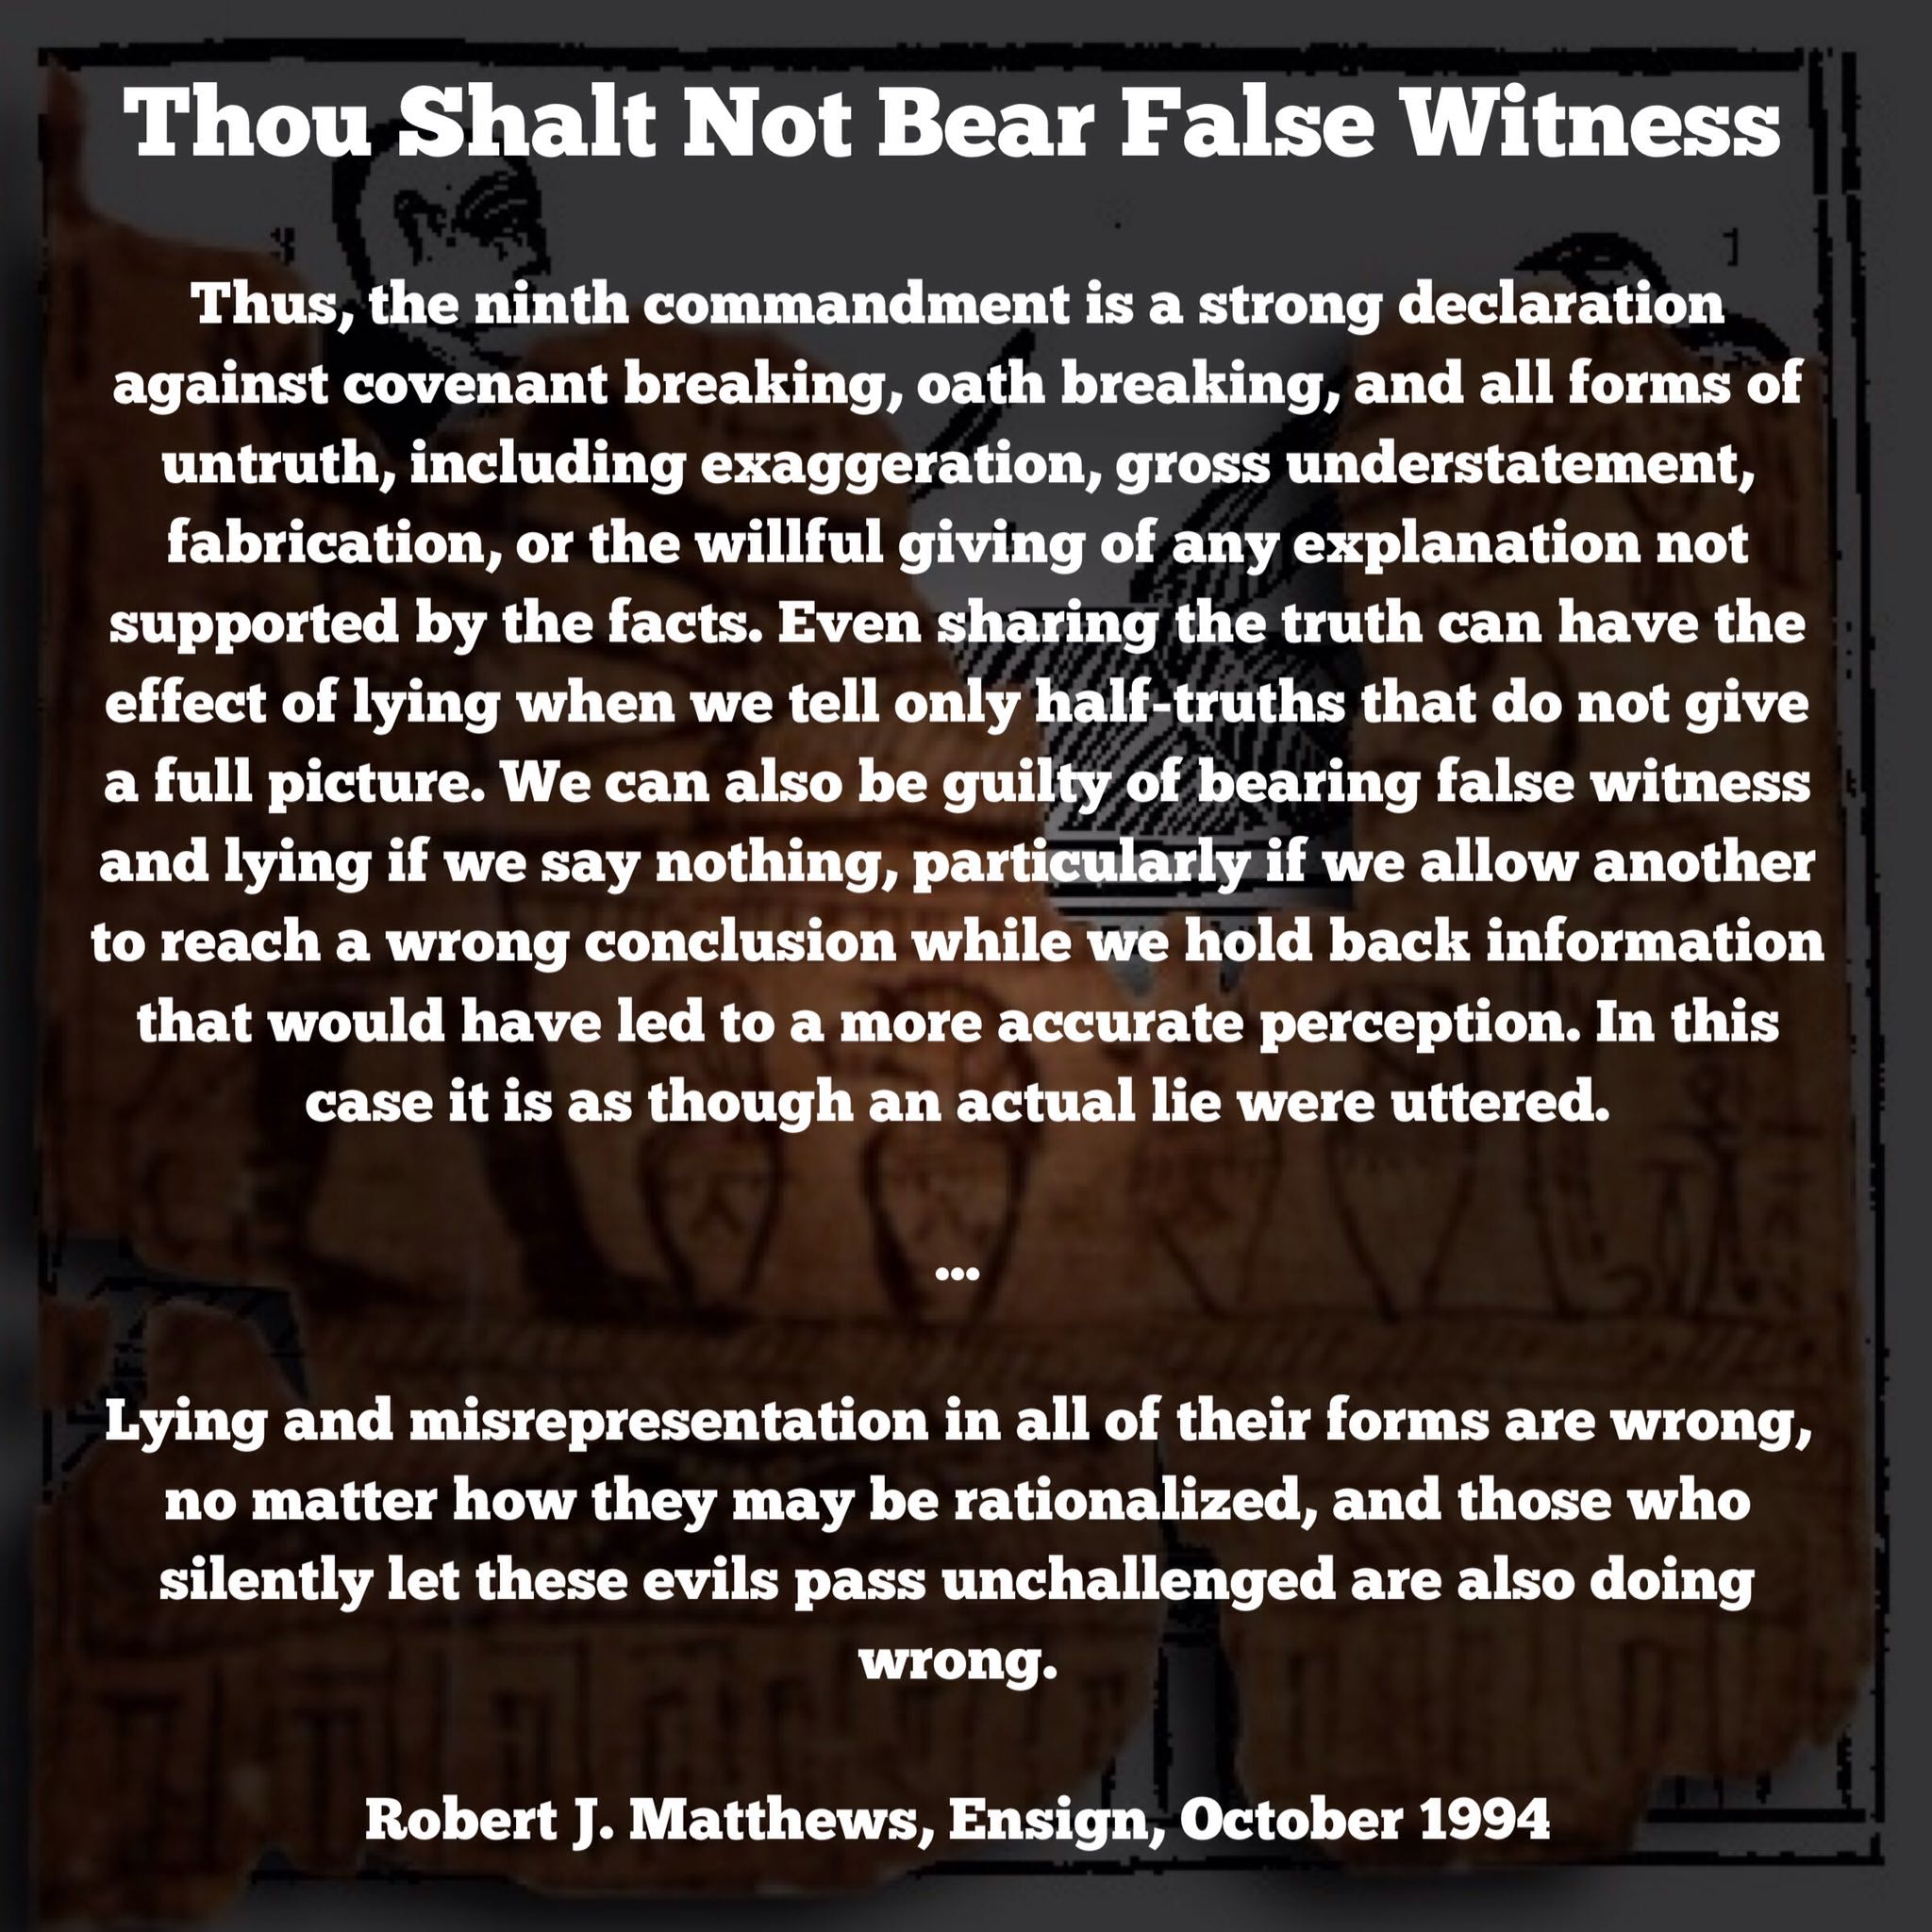 Thou shalt not bear false witness